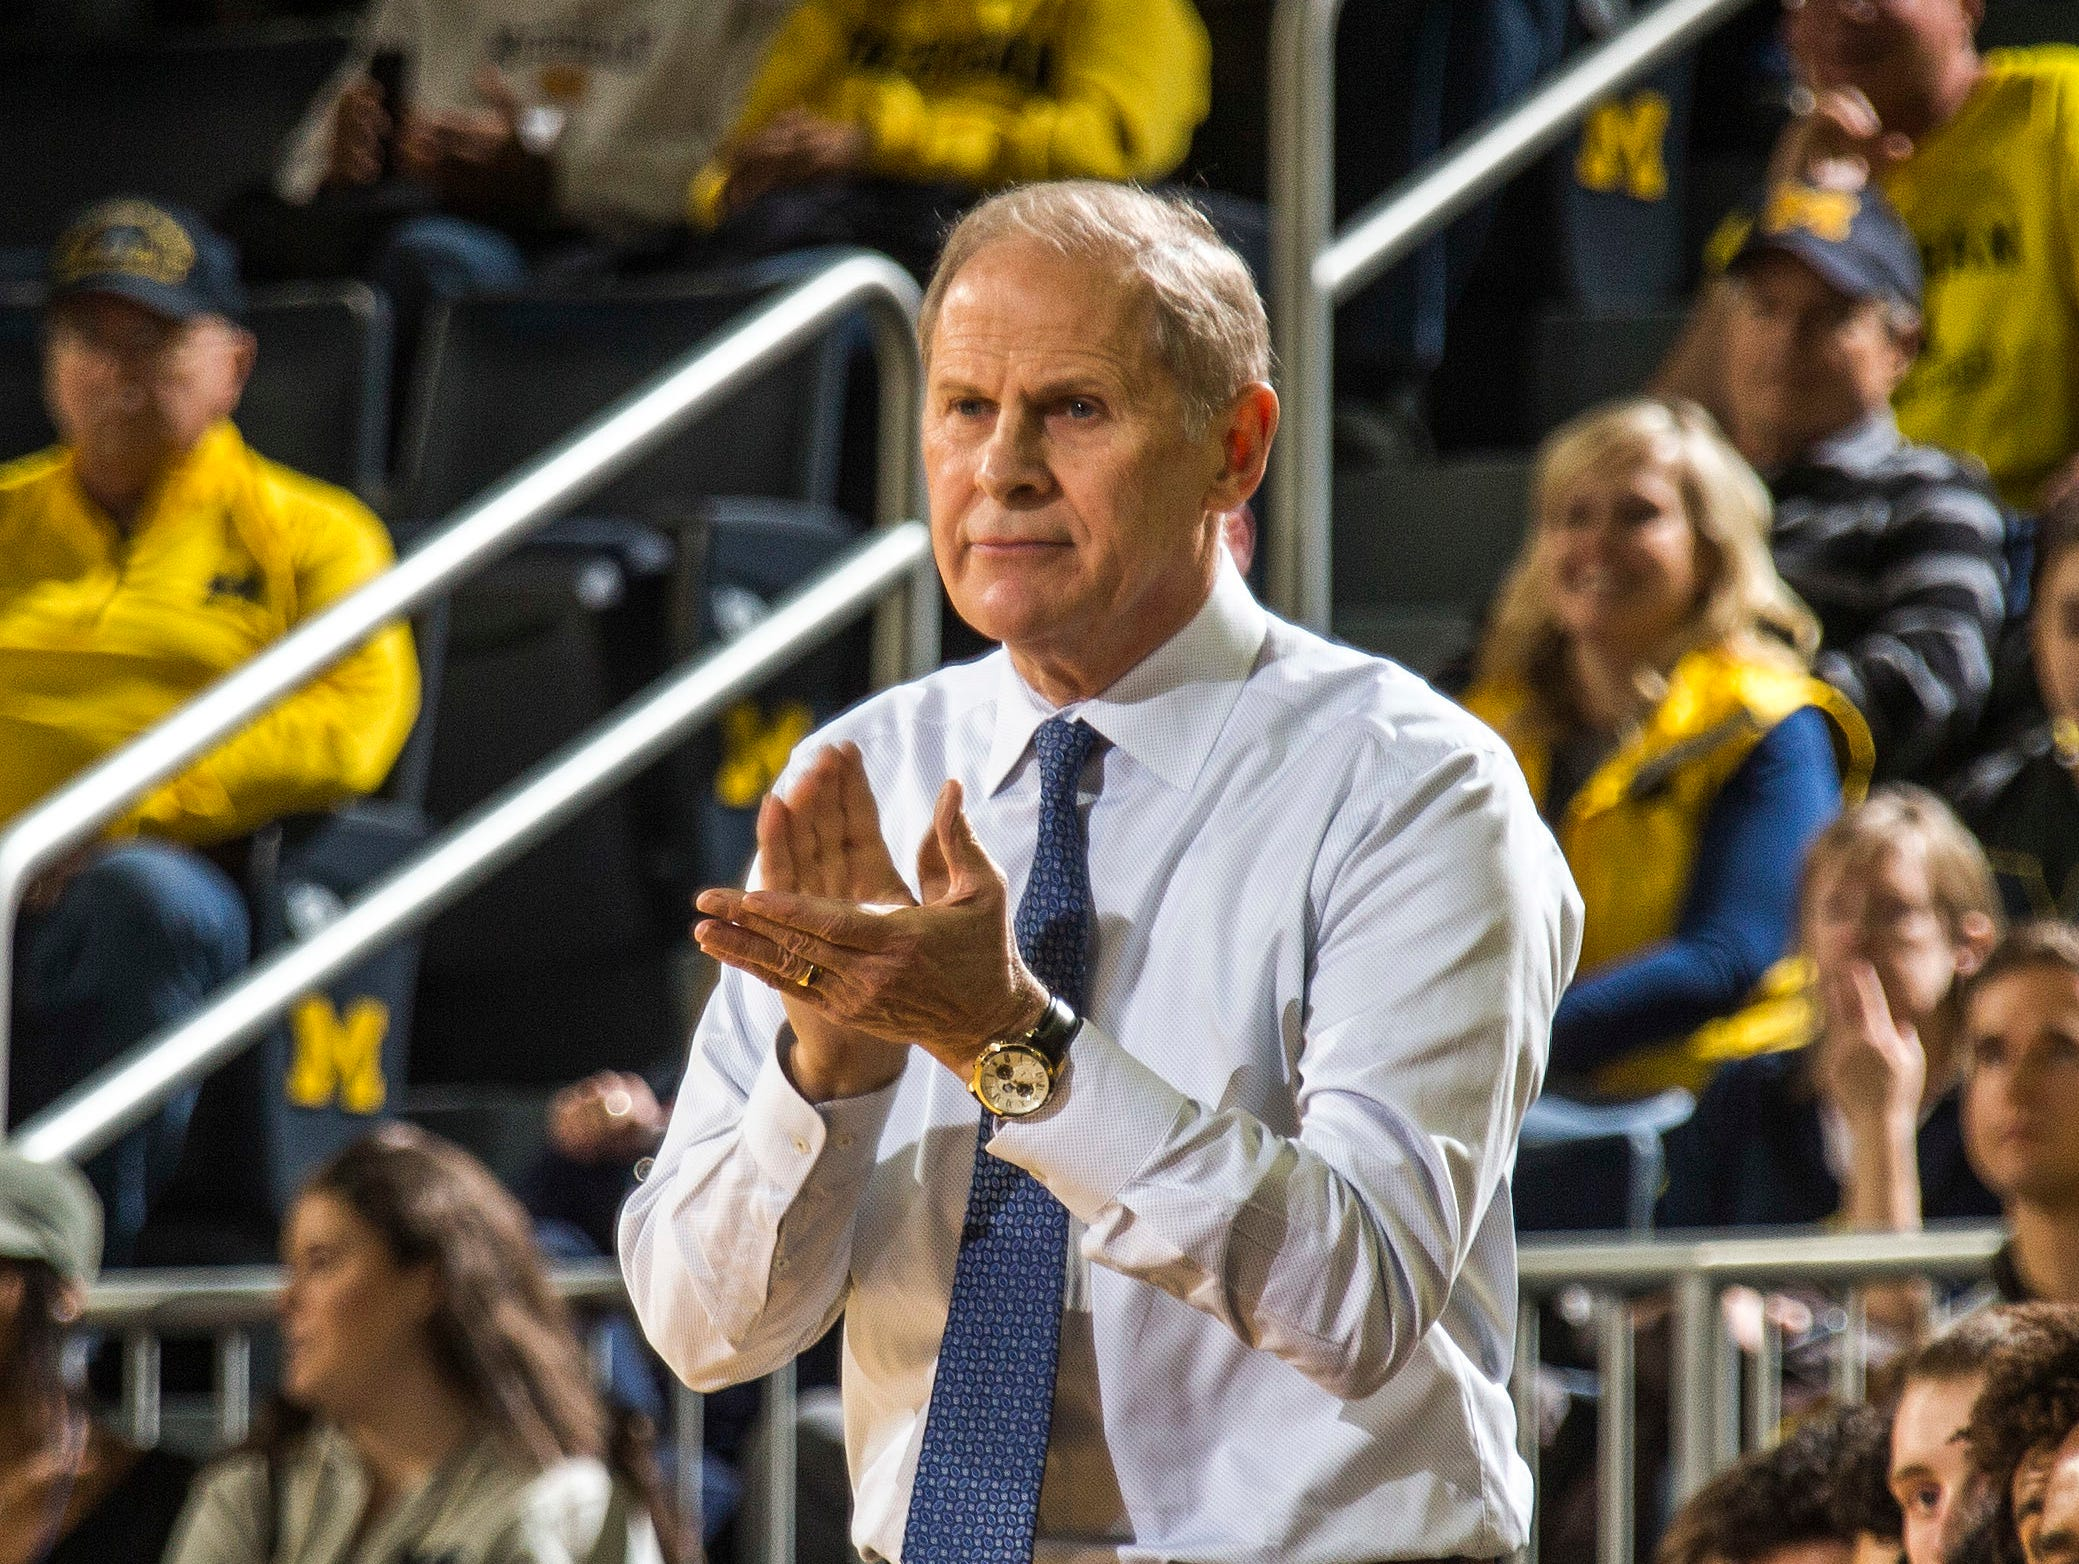 Michigan head coach John Beilein claps for his players from the bench in the first half of an NCAA college basketball game against Holy Cross at Crisler Center in Ann Arbor, Mich., Saturday, Nov. 10, 2018. Michigan won 56-37. (AP Photo/Tony Ding)